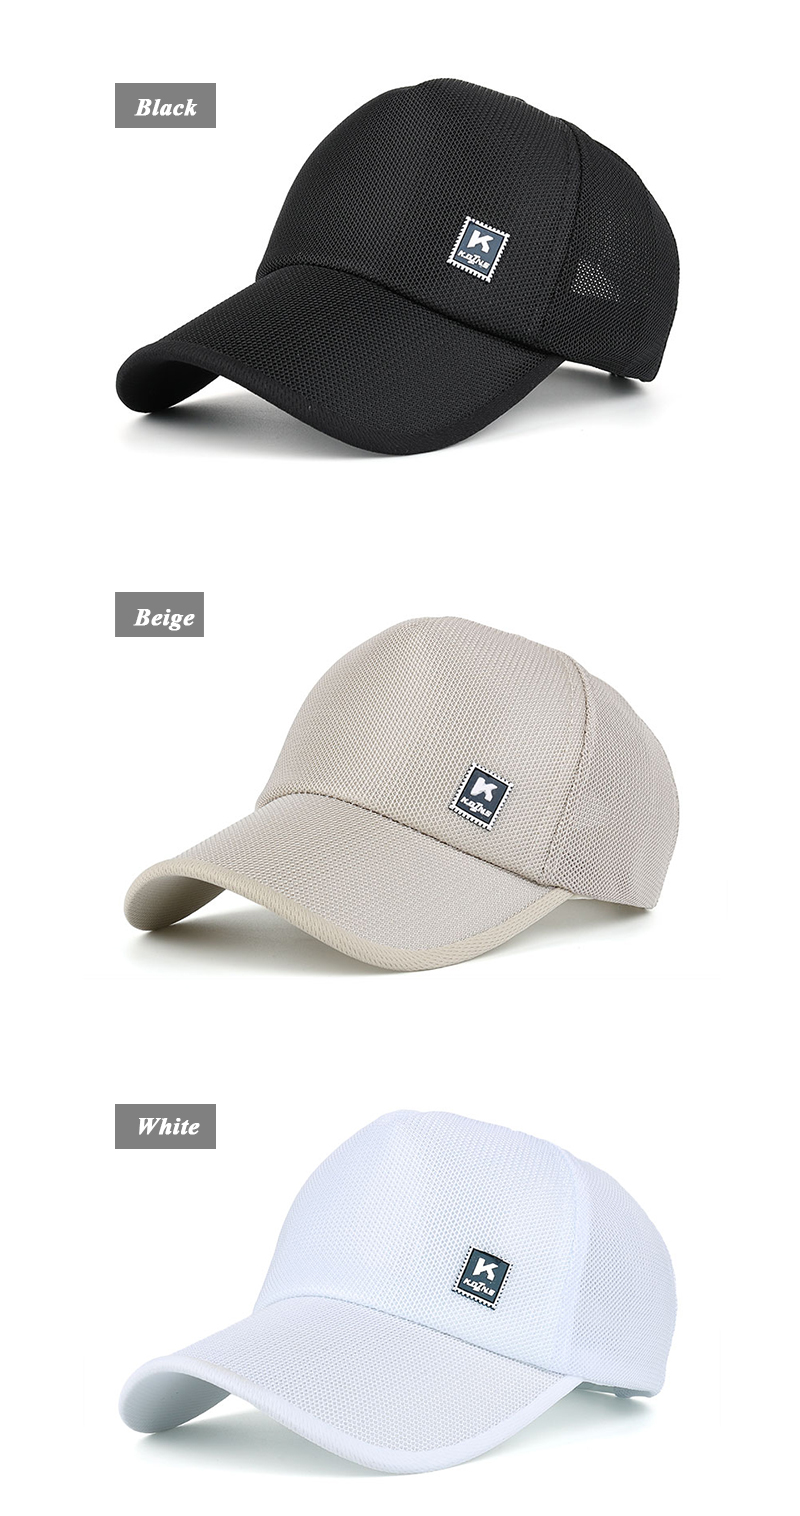 Stamp Emblem Snapback Cap - Black Cap, Beige Cap and White Cap